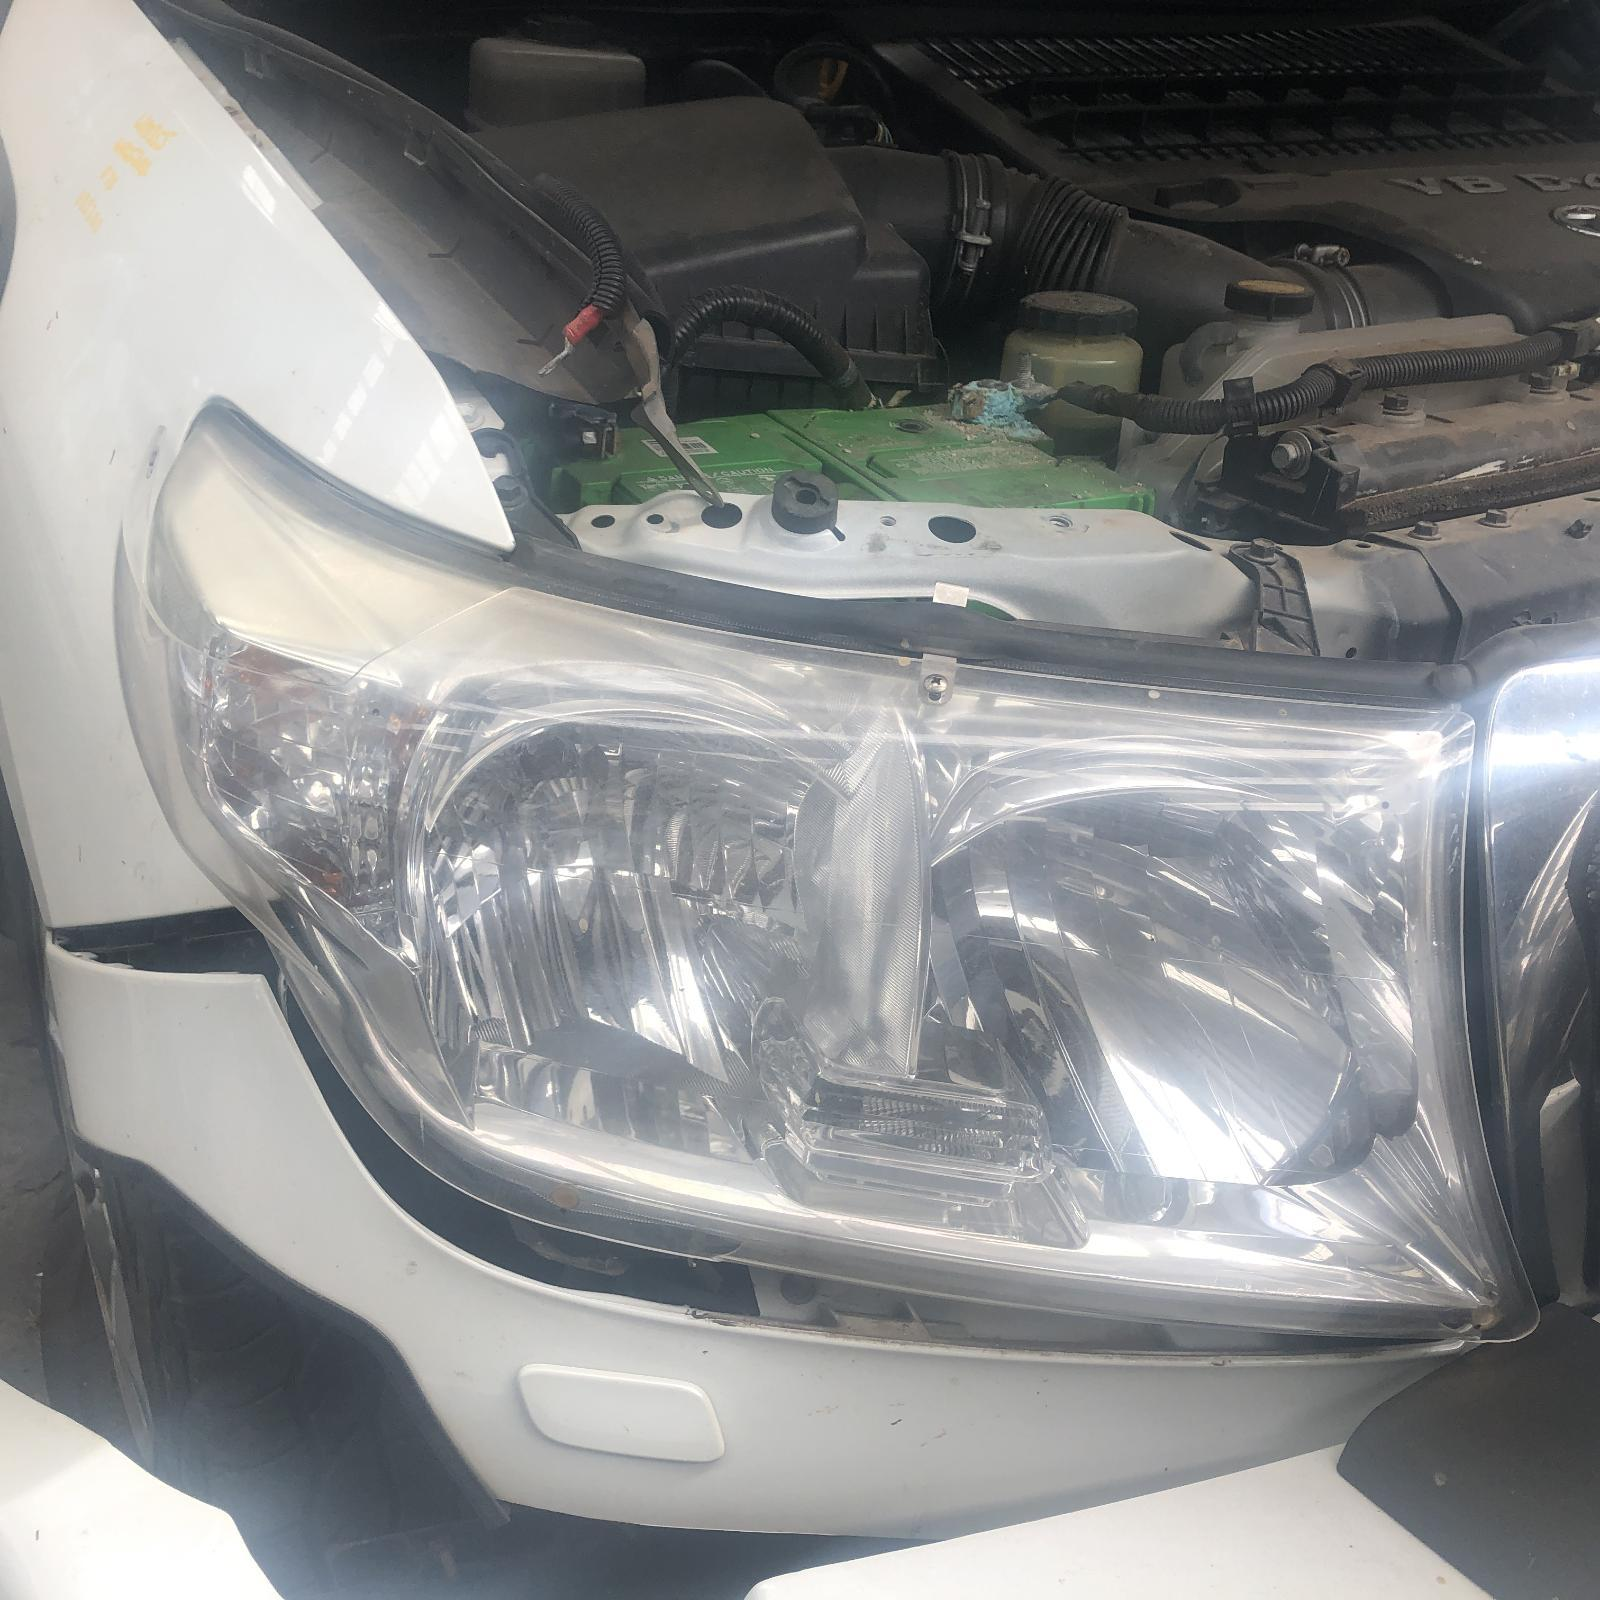 TOYOTA LANDCRUISER, Right Headlamp, 200 SERIES, HALOGEN TYPE, 11/07-07/15